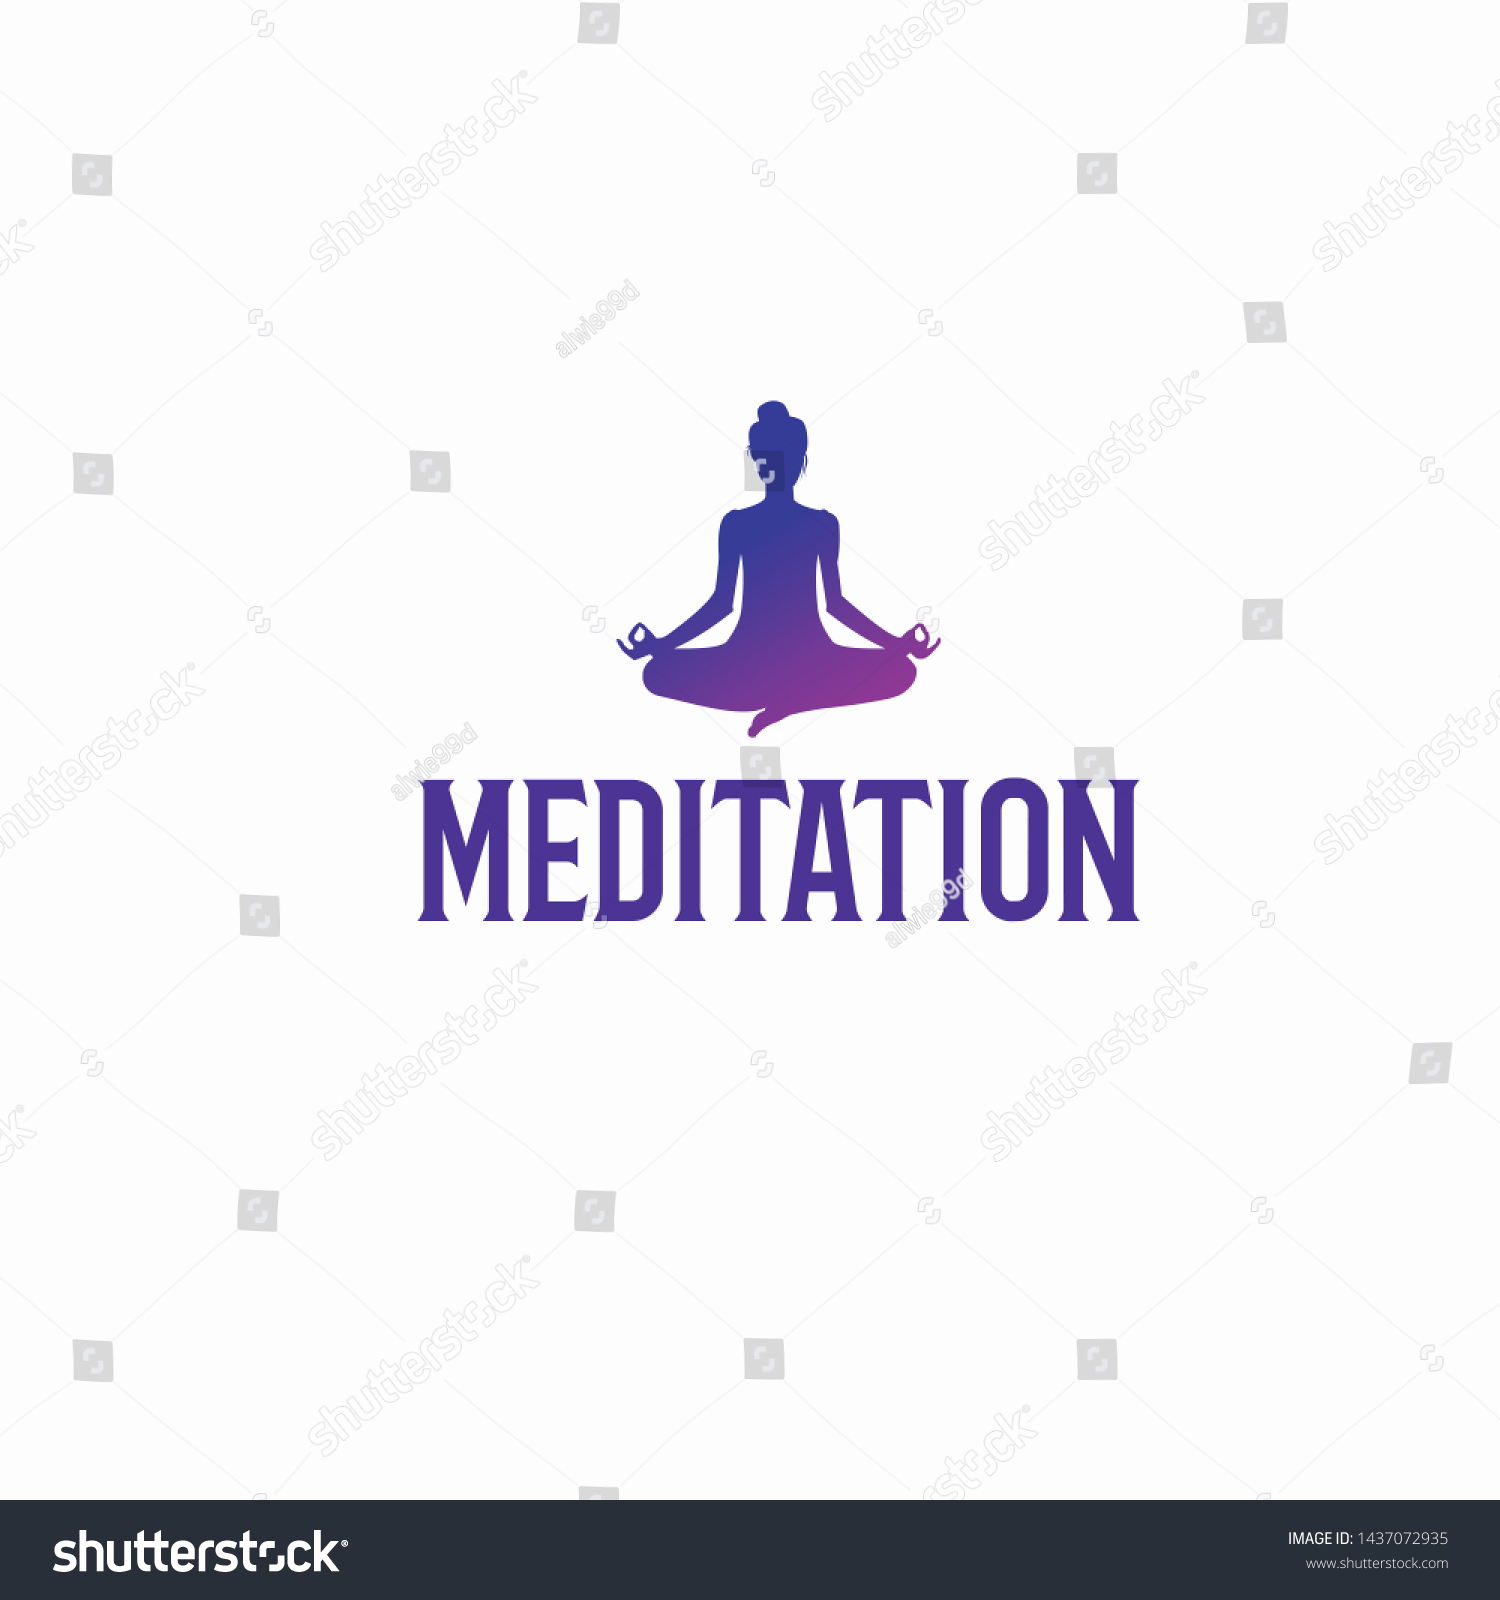 meditation exclusive logo design inspiration stock vector royalty free 1437072935 shutterstock